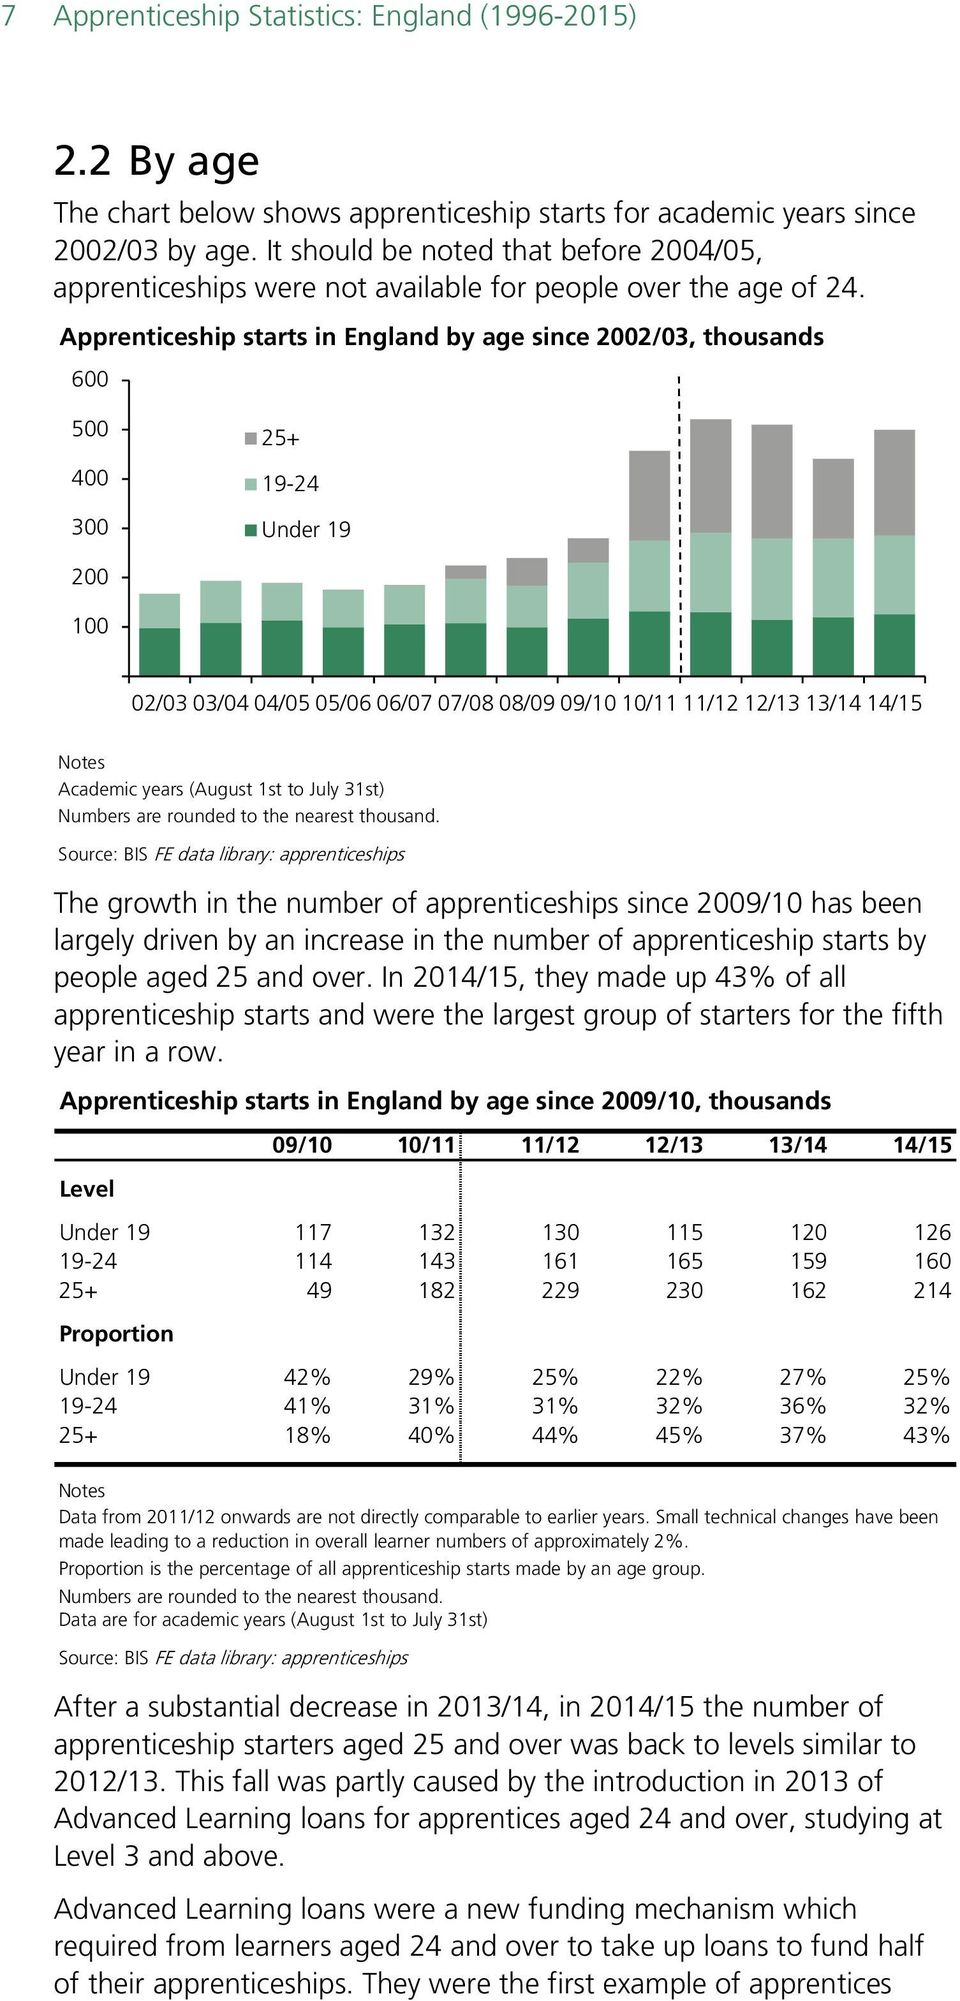 Apprenticeship starts in England by age since 2002/03, thousands 600 500 400 300 25+ 19-24 Under 19 200 100 02/03 03/04 04/05 05/06 06/07 07/08 08/09 09/10 10/11 11/12 12/13 13/14 14/15 Academic